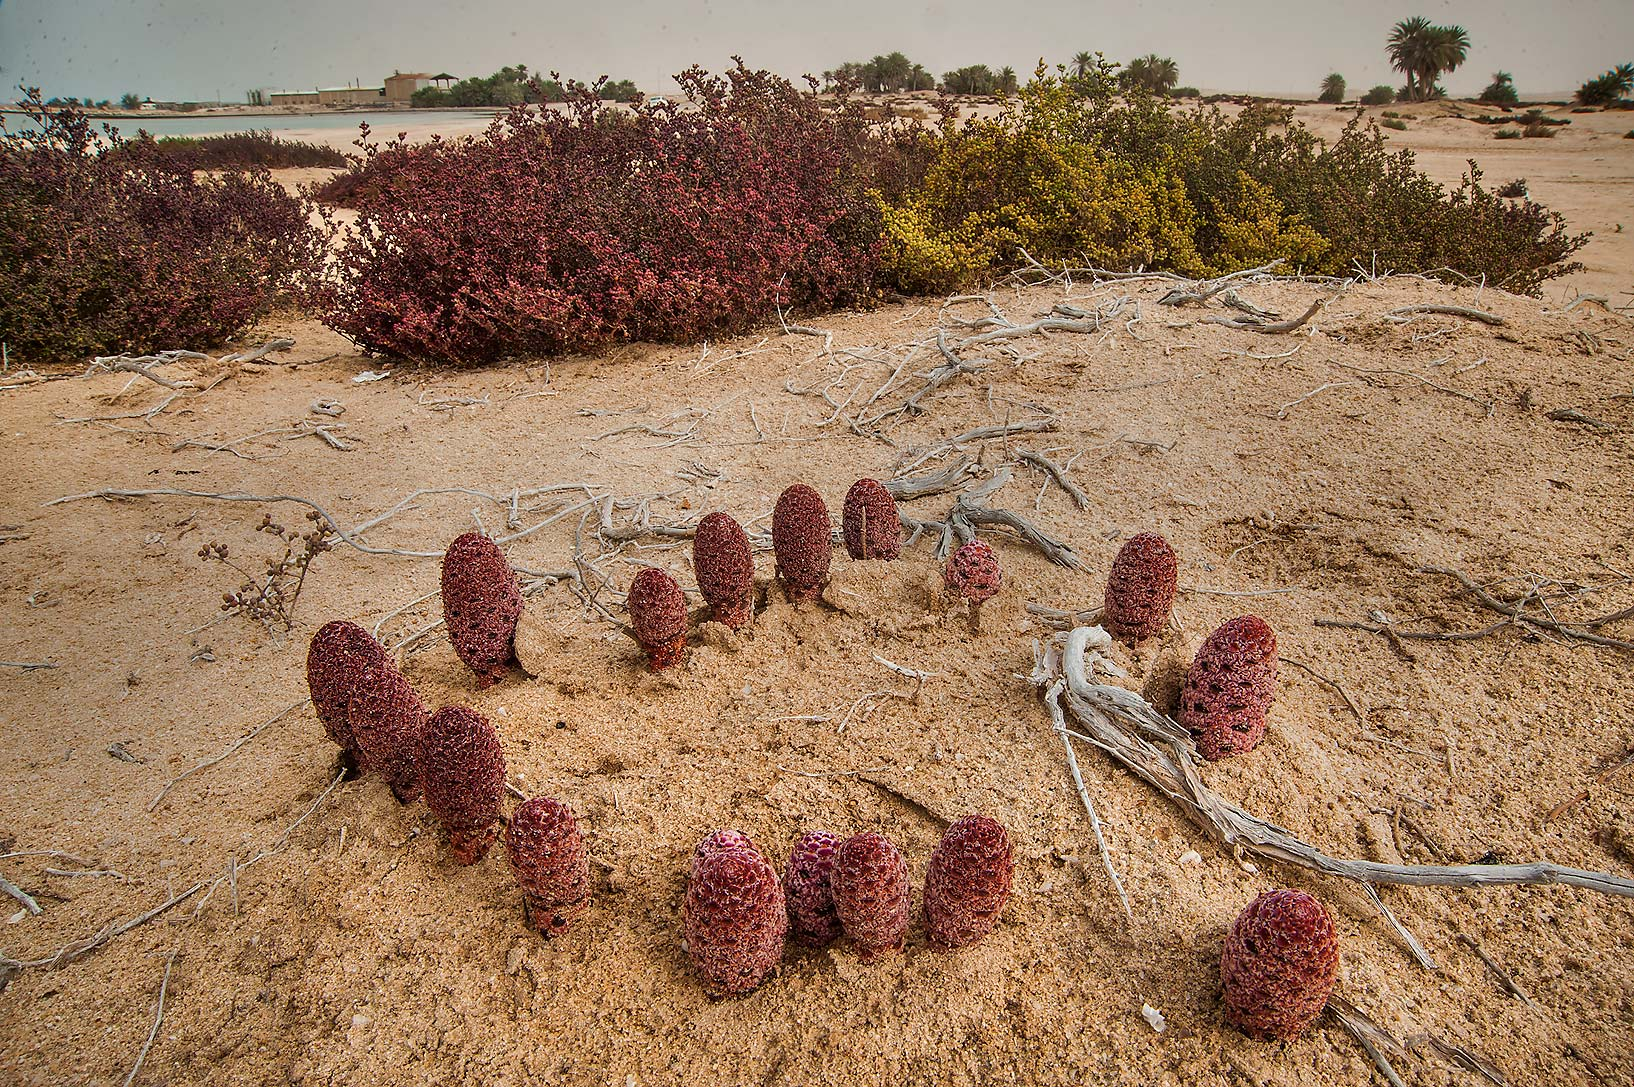 Parasitic plants of Desert Thumb (Cynomorium...Well near Umm Bab. South-western Qatar